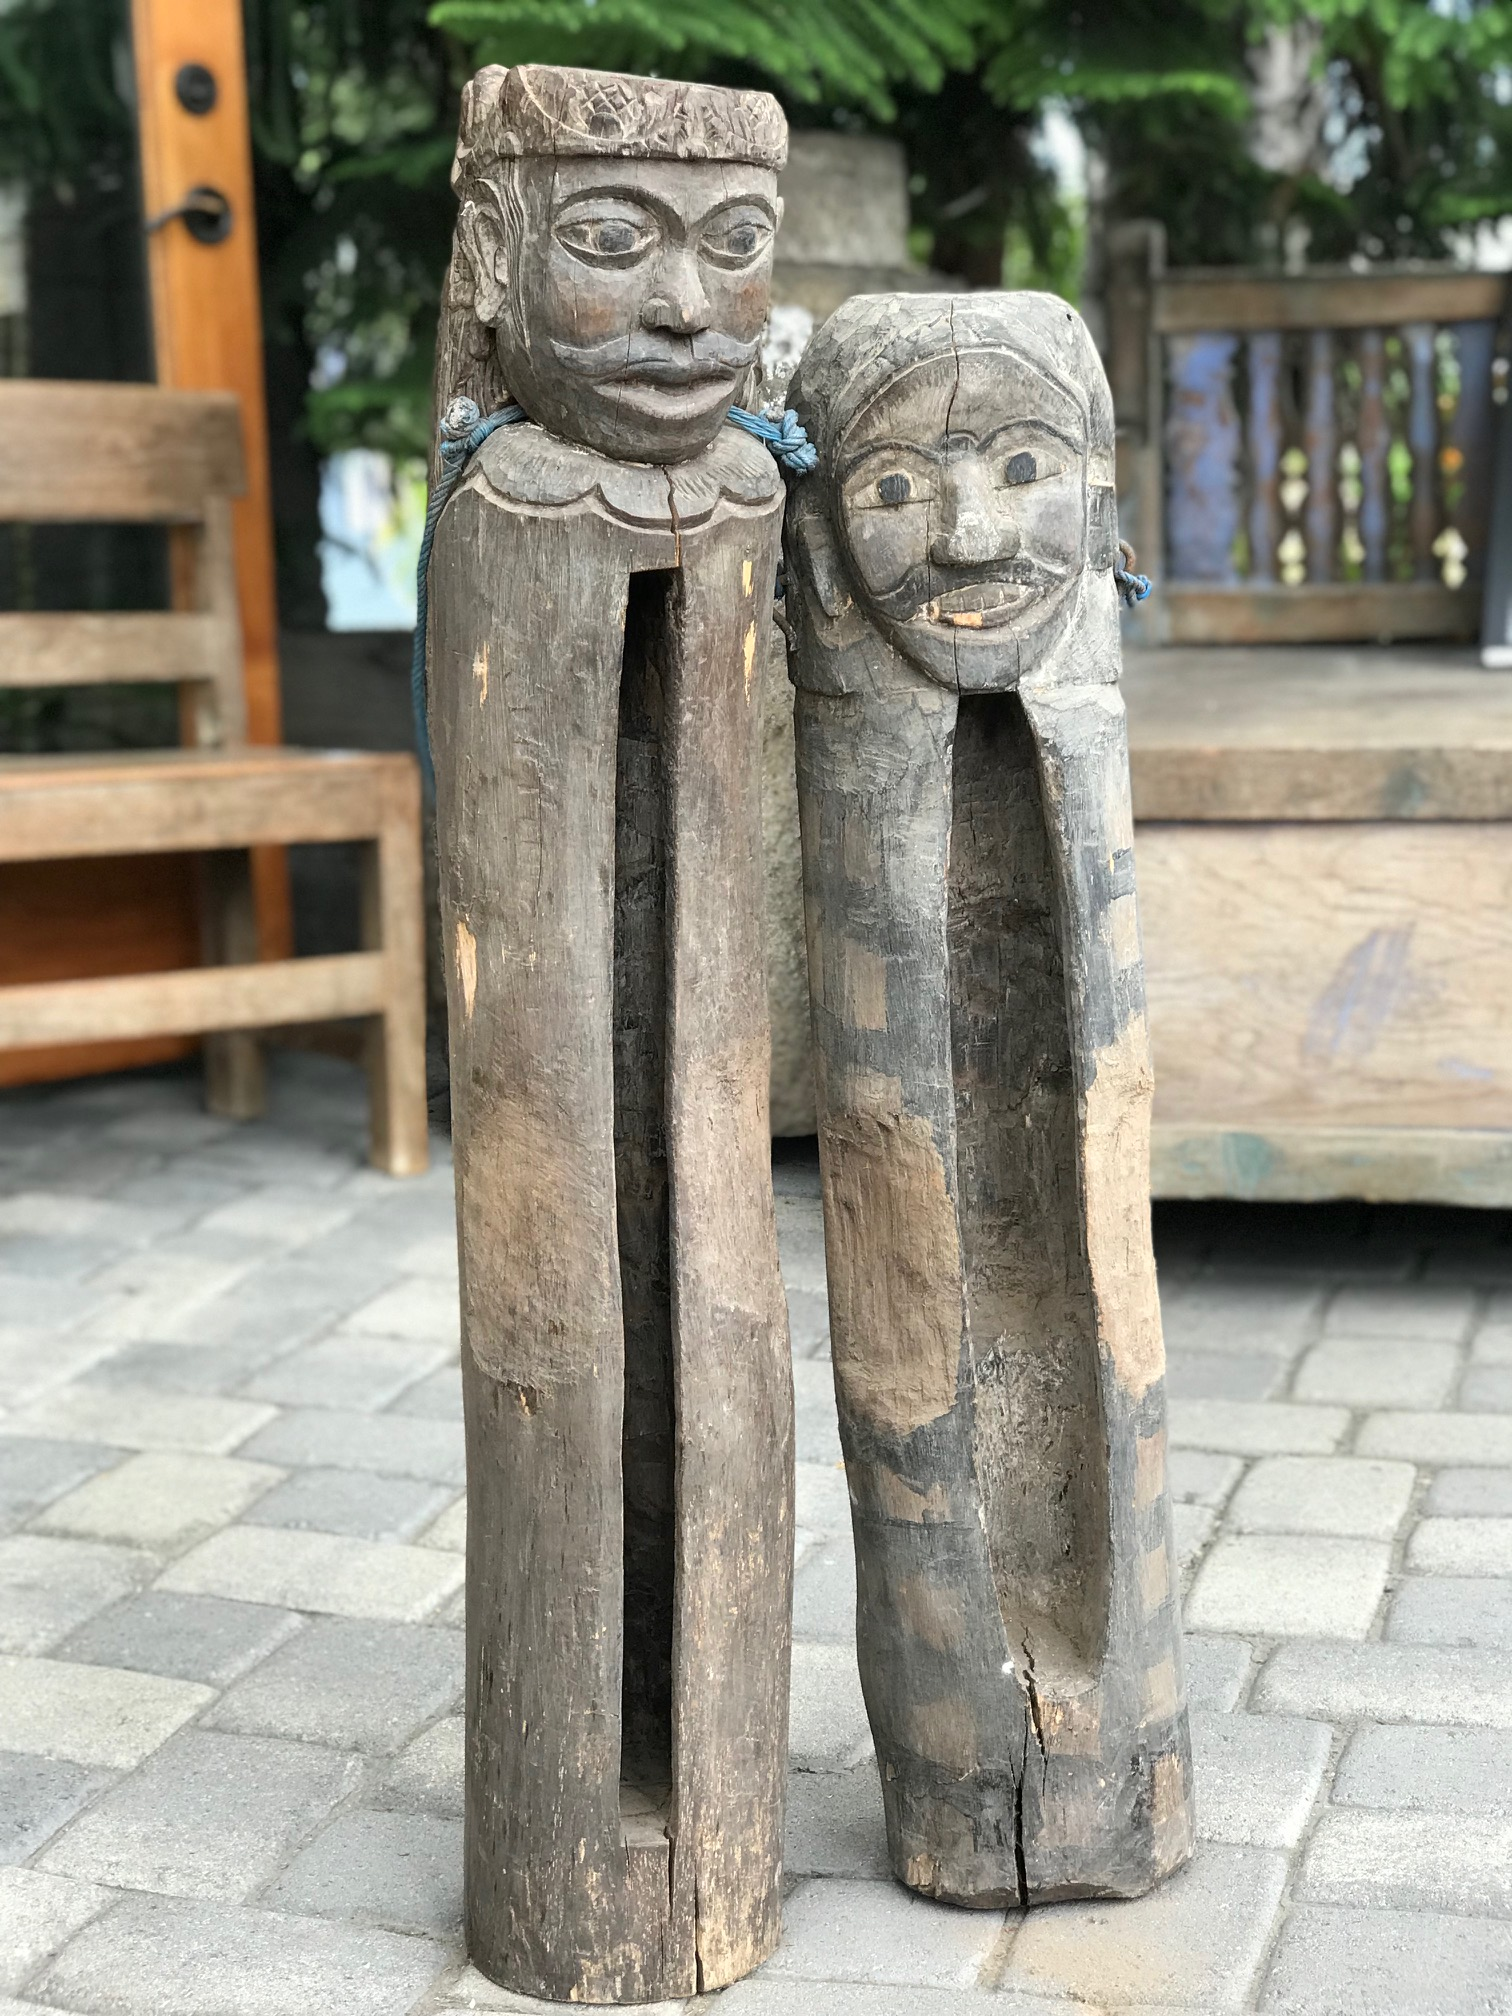 """Pair of Tribal Musical Instruments, Anthropomorphic Slit Drum or Gong, Kulkul, Bali, Indonesia, wood, paint, This type of percussion instrument was developed and used by people in forested areas as its sound will carry far through the surrounding jungle and rice fields. Often hung or placed in a drum pavilion or tower and used to call villagers to meetings, or other events by tapping out a signal. Left - 39 1/2"""" x 7 1/2"""" x 7"""", $950.; Right - 34 1/2"""" x 7"""" x 7"""", $590.; thedavidalancollection.com , solana beach, ca"""